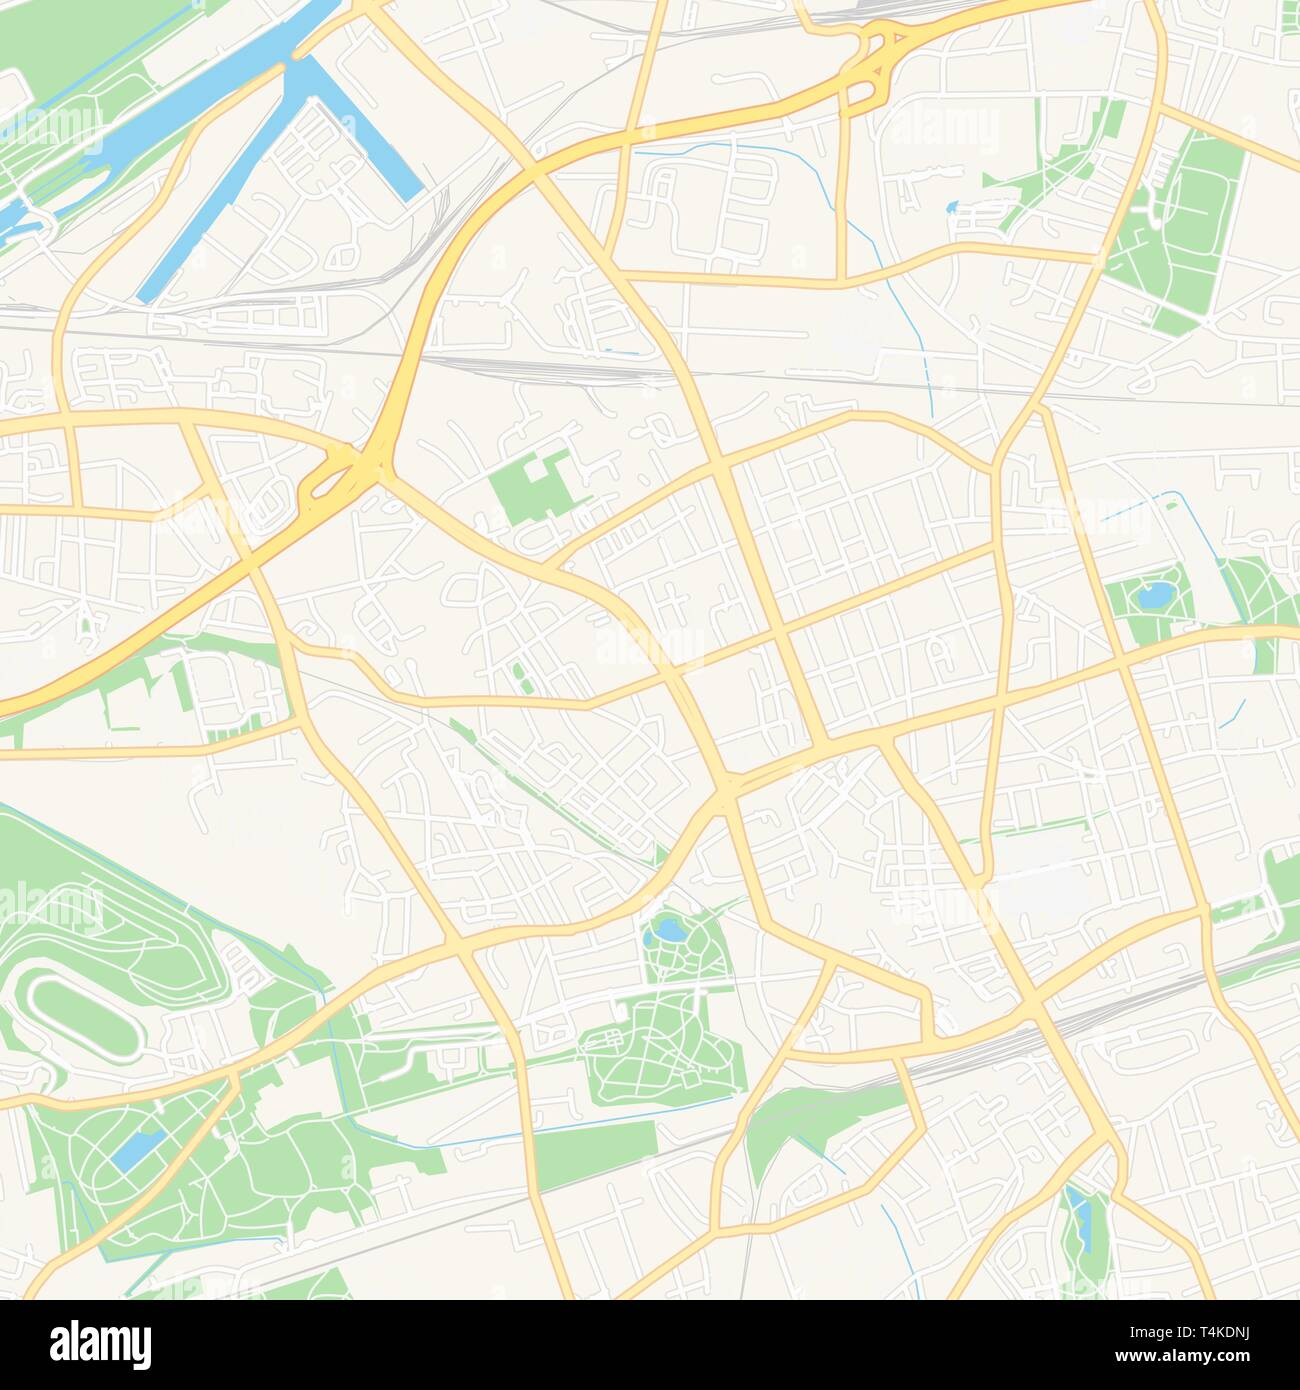 Map Of Germany Gelsenkirchen.Printable Map Of Gelsenkirchen Germany With Main And Secondary